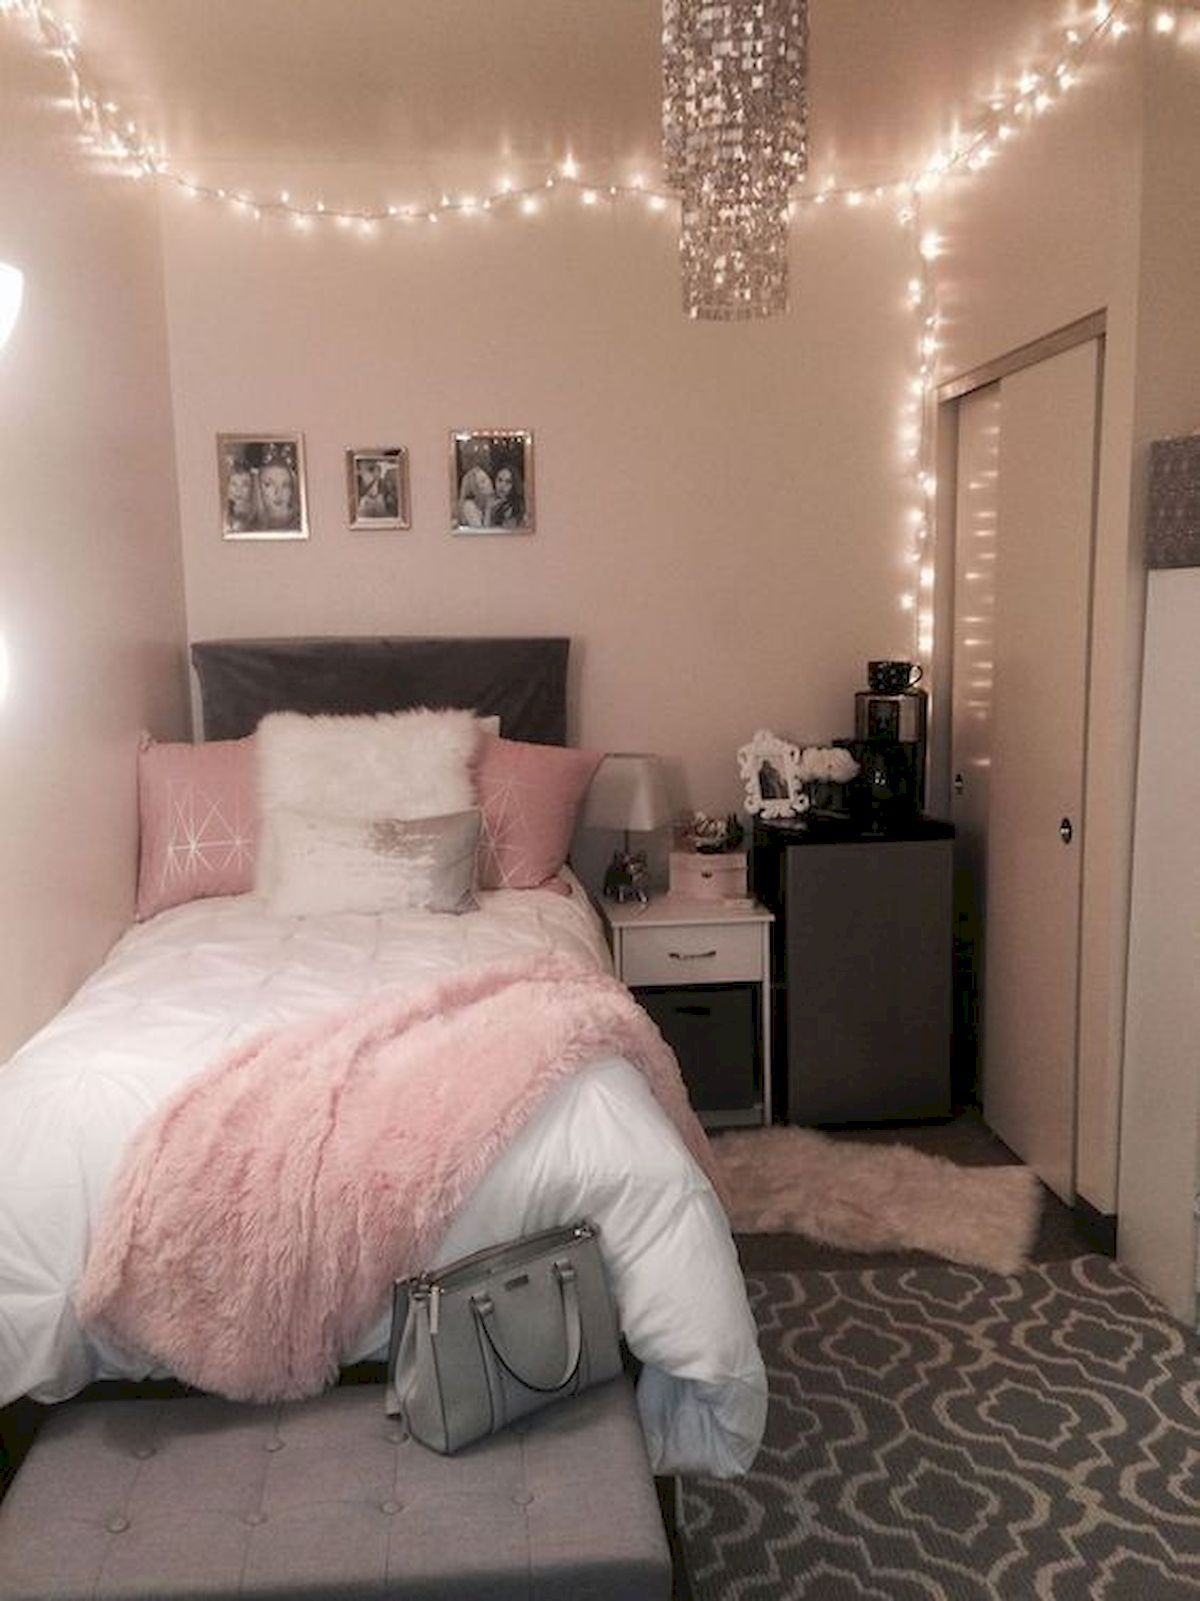 5 Cute Small Bedroom Design and Decor Ideas for Teenage Girl